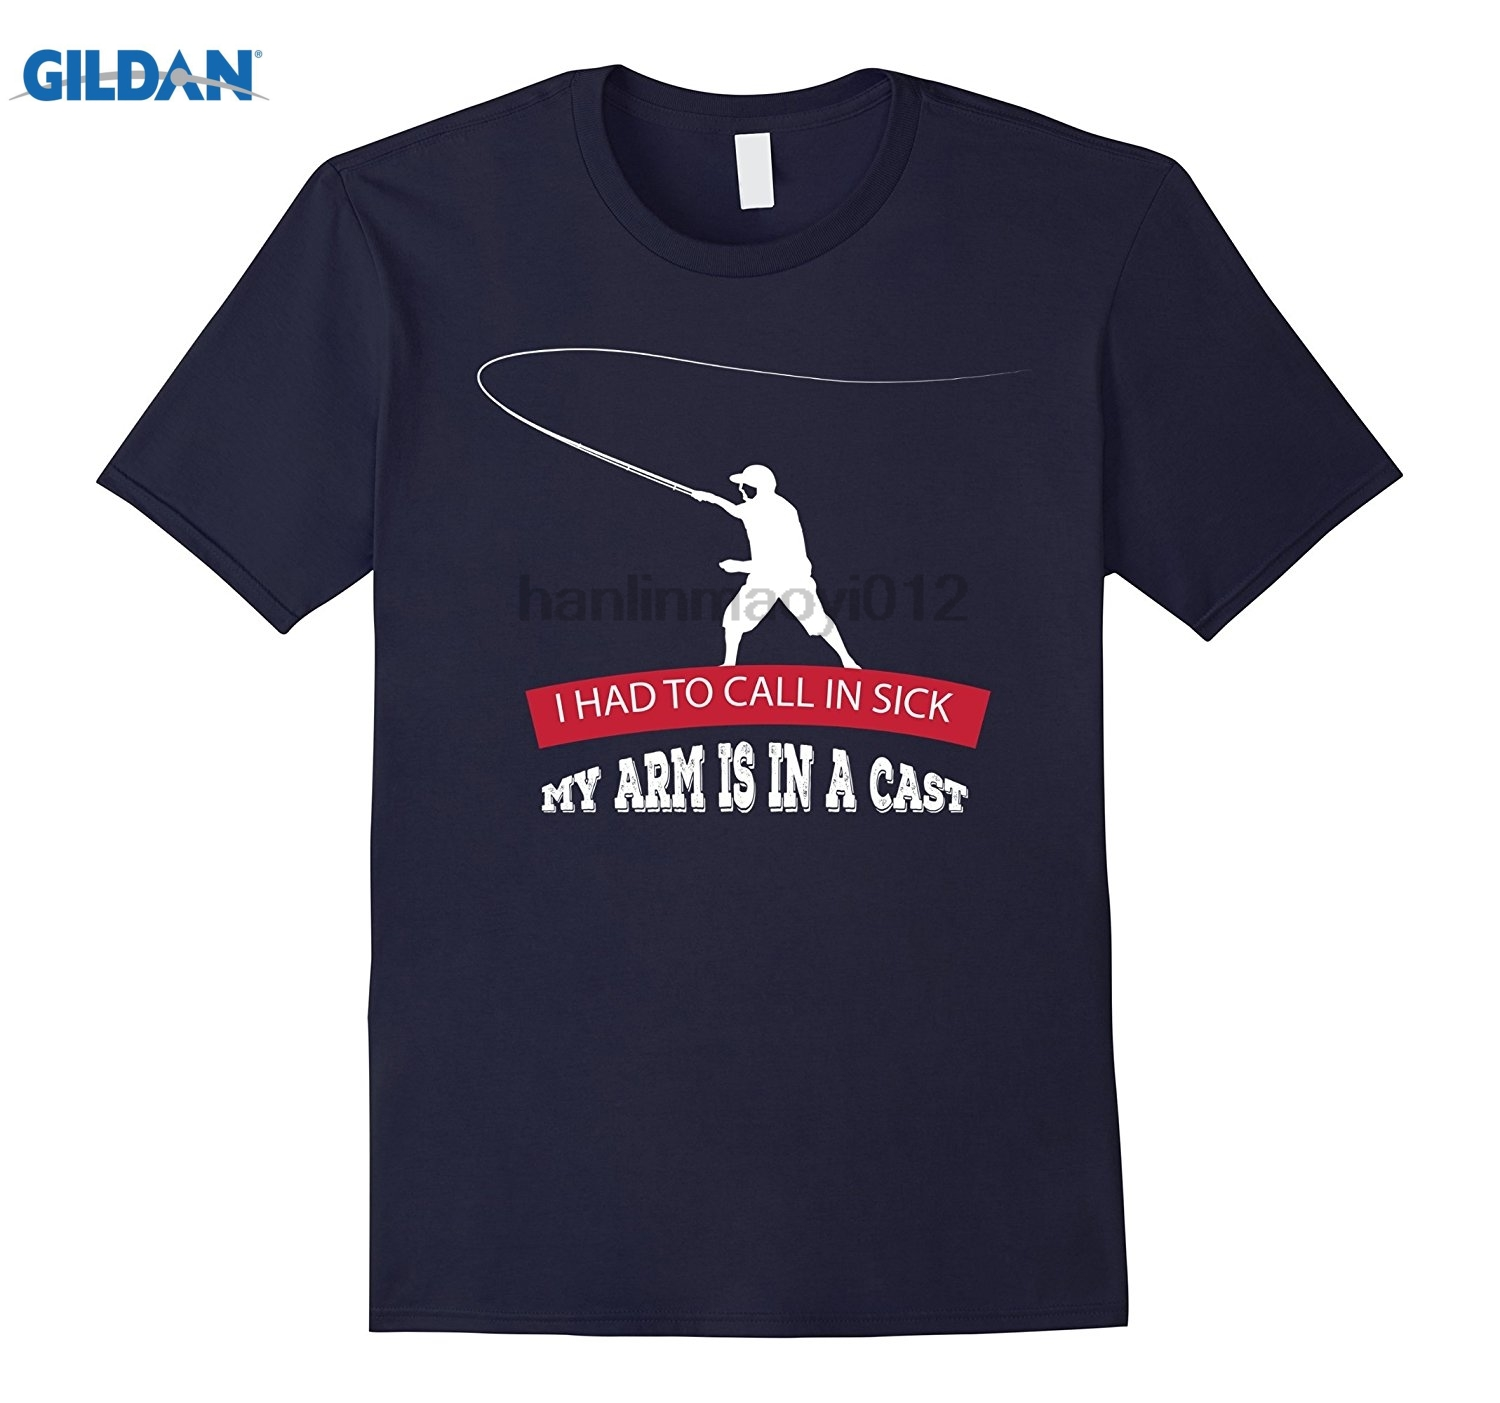 GILDAN I had to call in sick my arm is in a cast shirt Cotton fashion 2018 trend T-shirt summer dress T-shirt